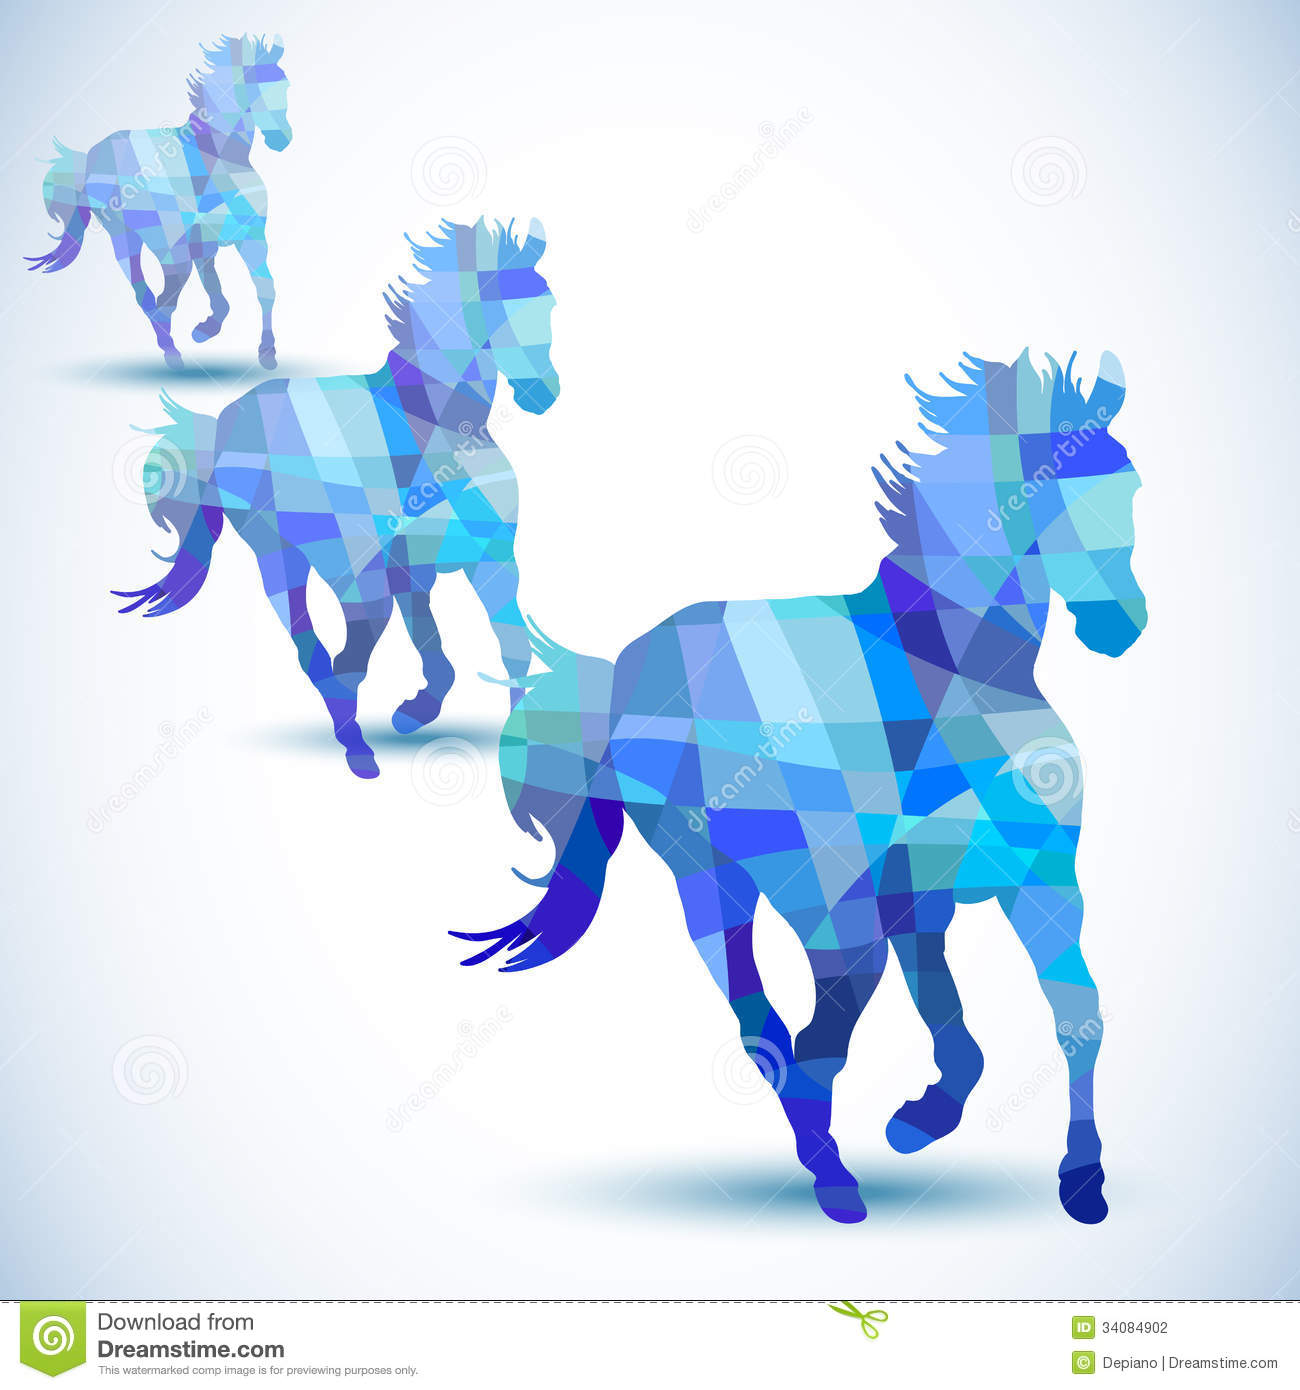 Blue Abstract Horse Geometric Shapes File Eps Format Congratulations Images Stock Photos Vectors